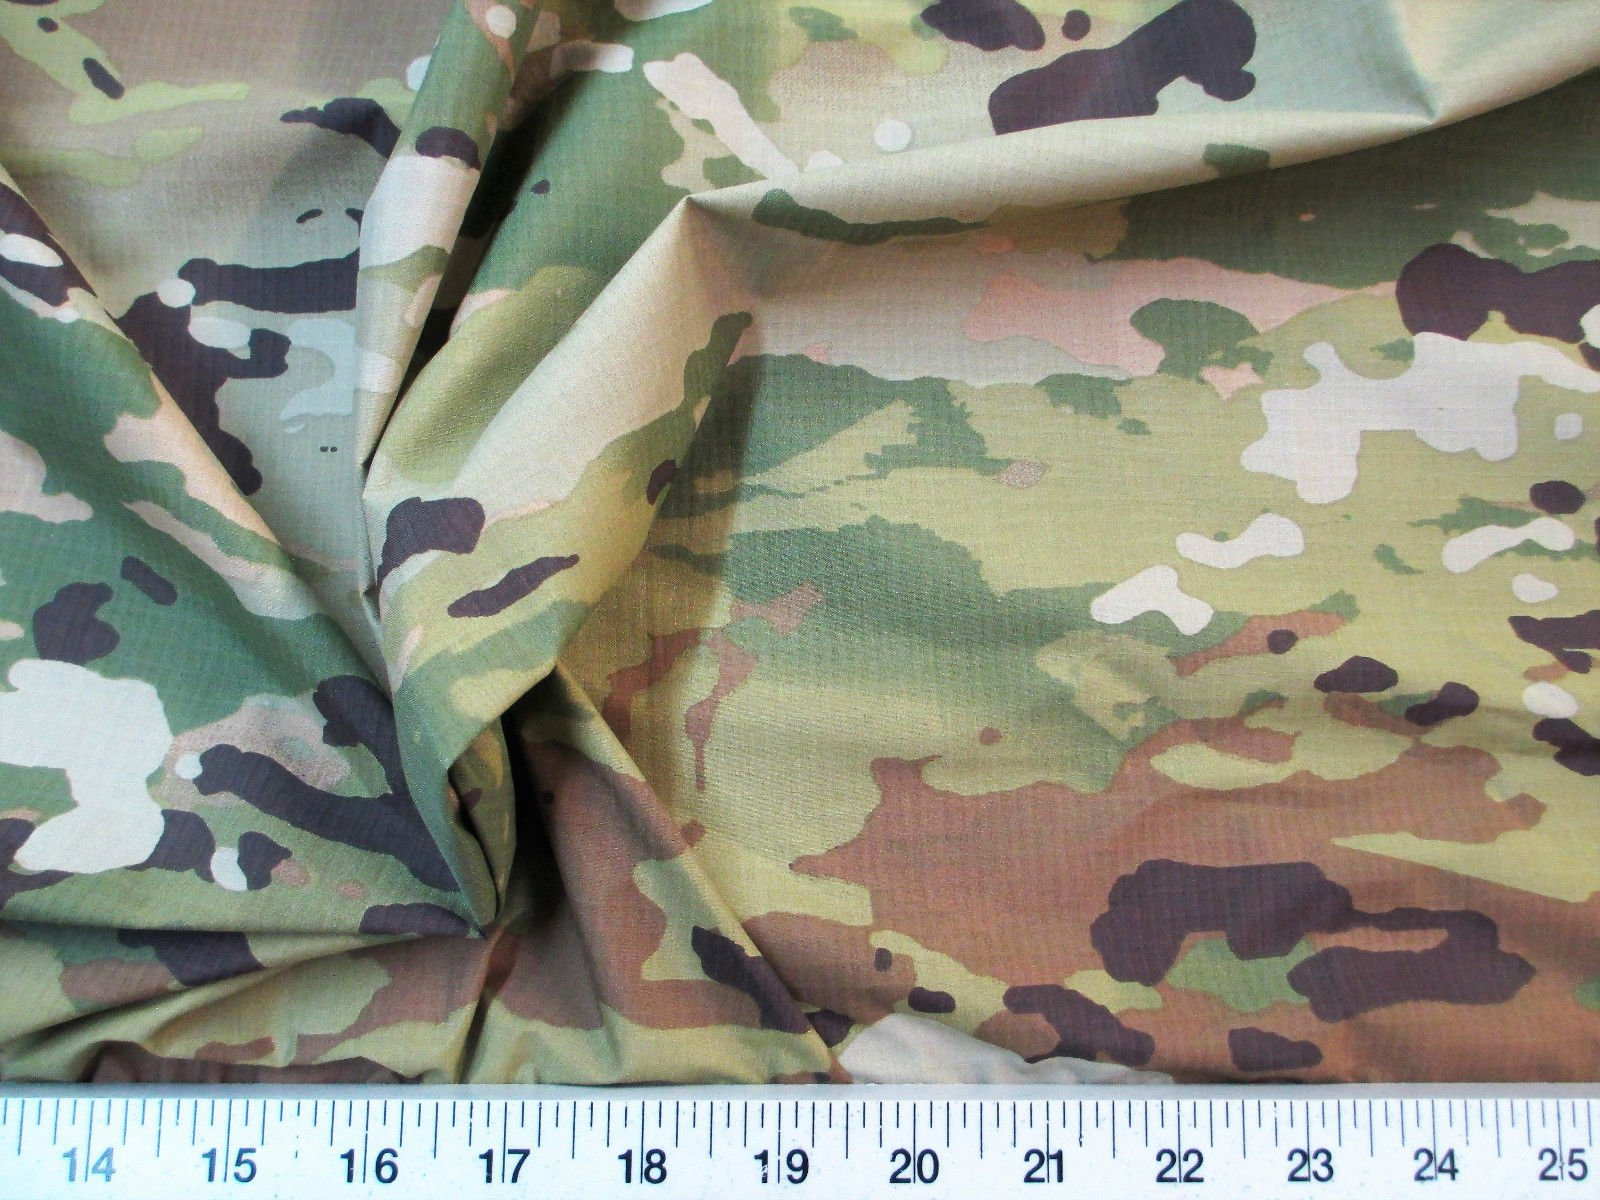 Paylessfabric 10 Yard Lot Fabric Ripstop Rip Stop Nylon Water Resistant Woodland Camouflage RS32